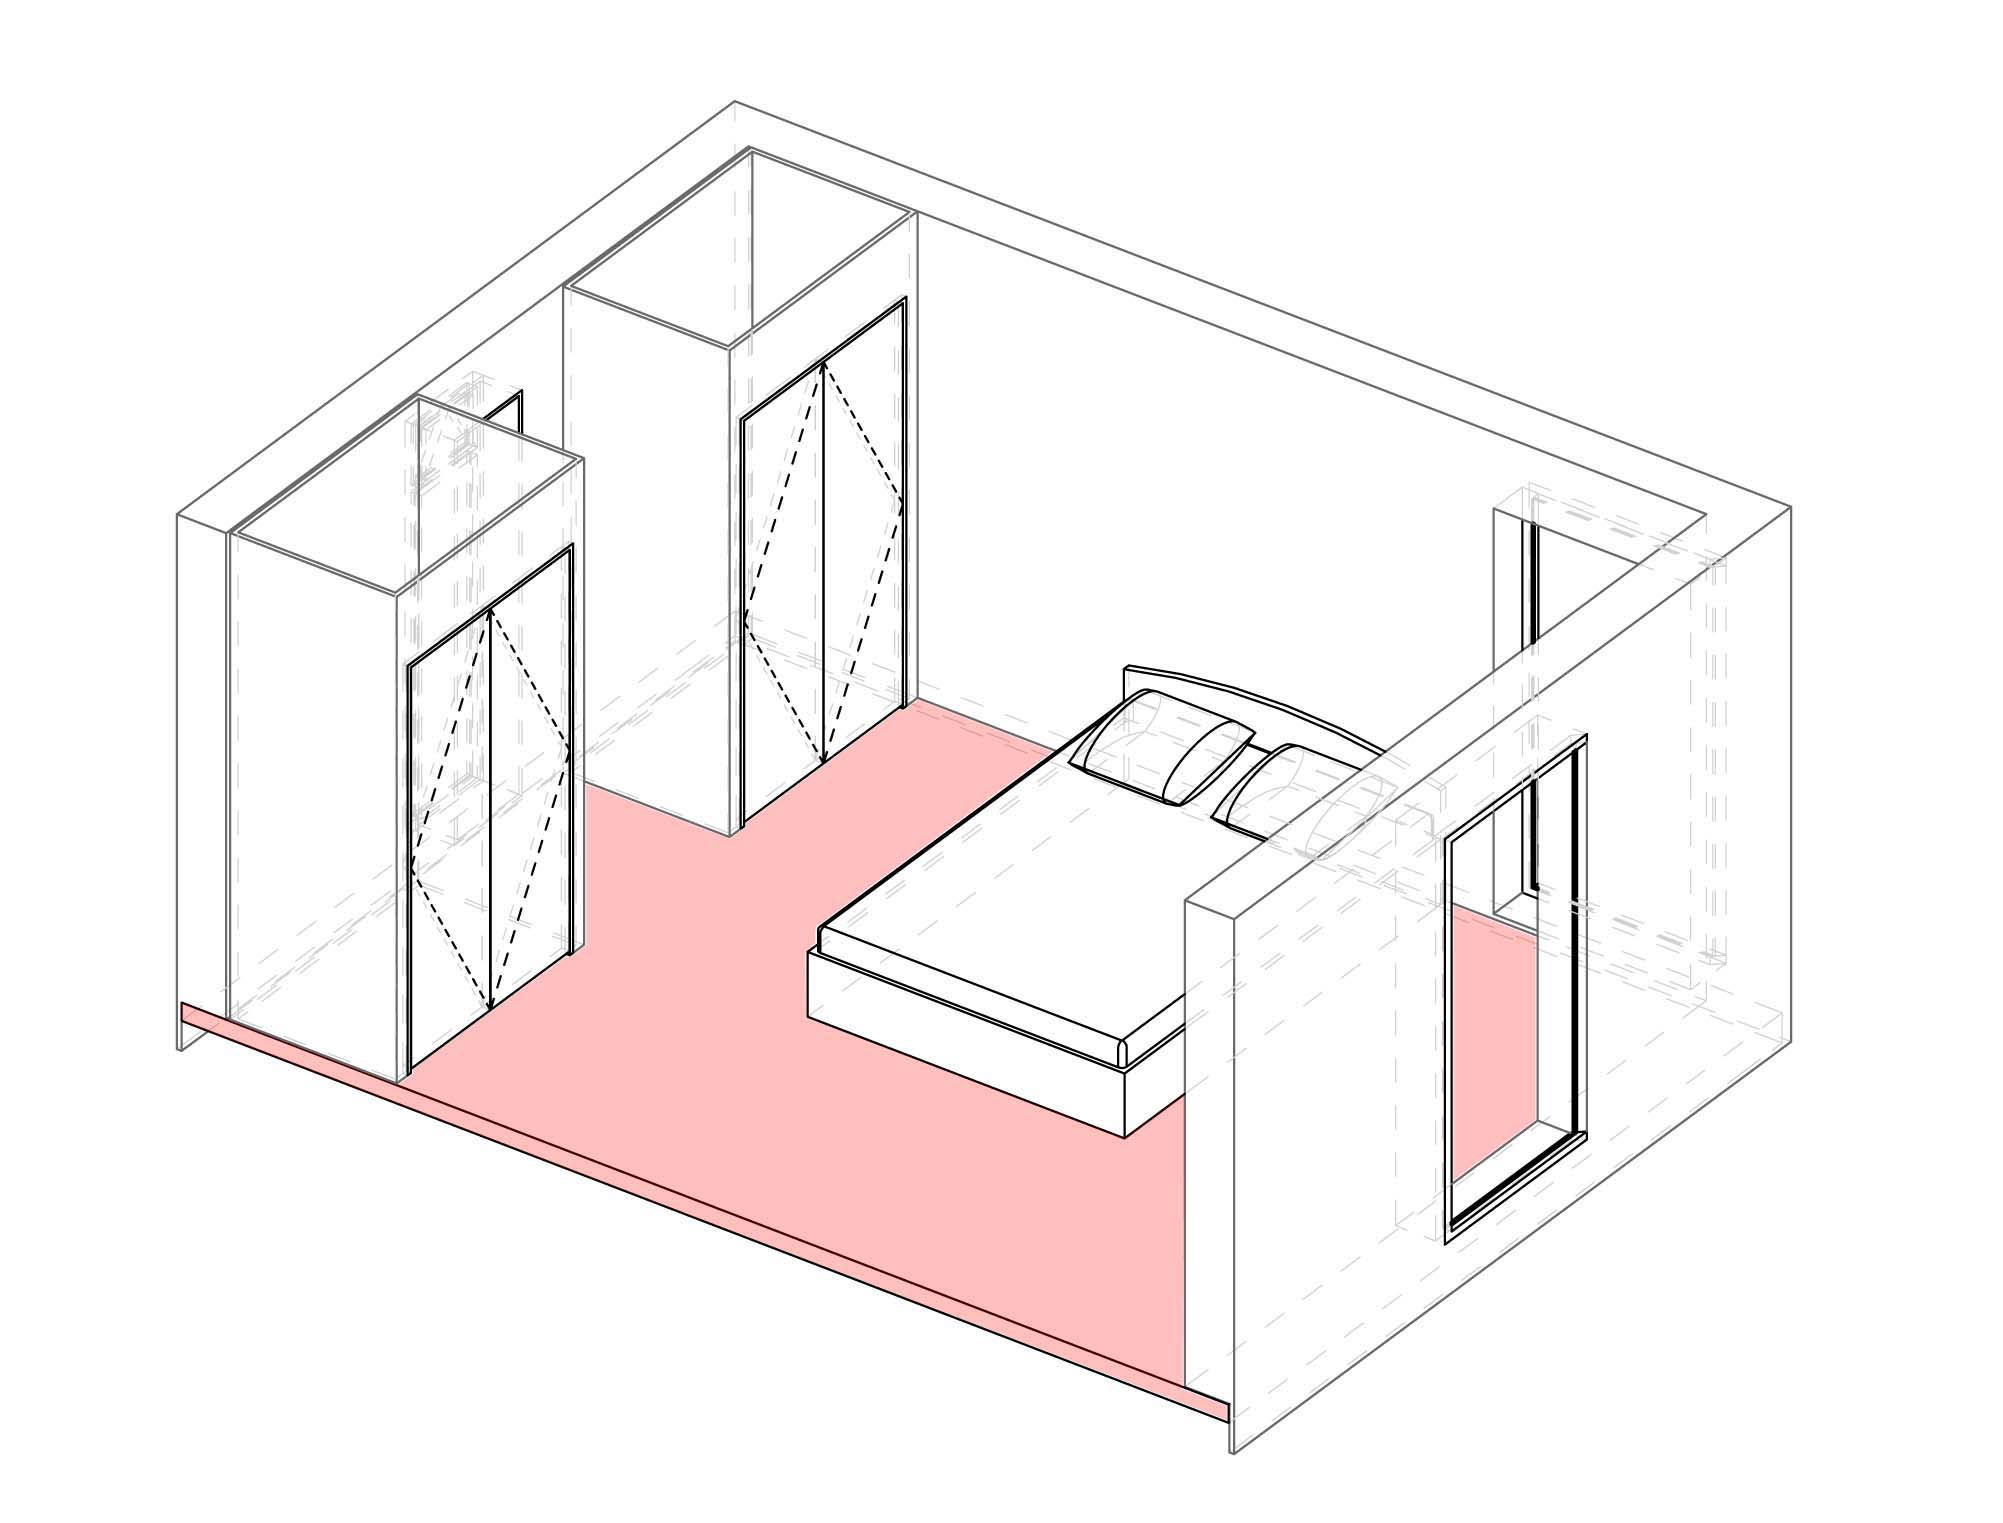 Axonometric projection of bedroom module.